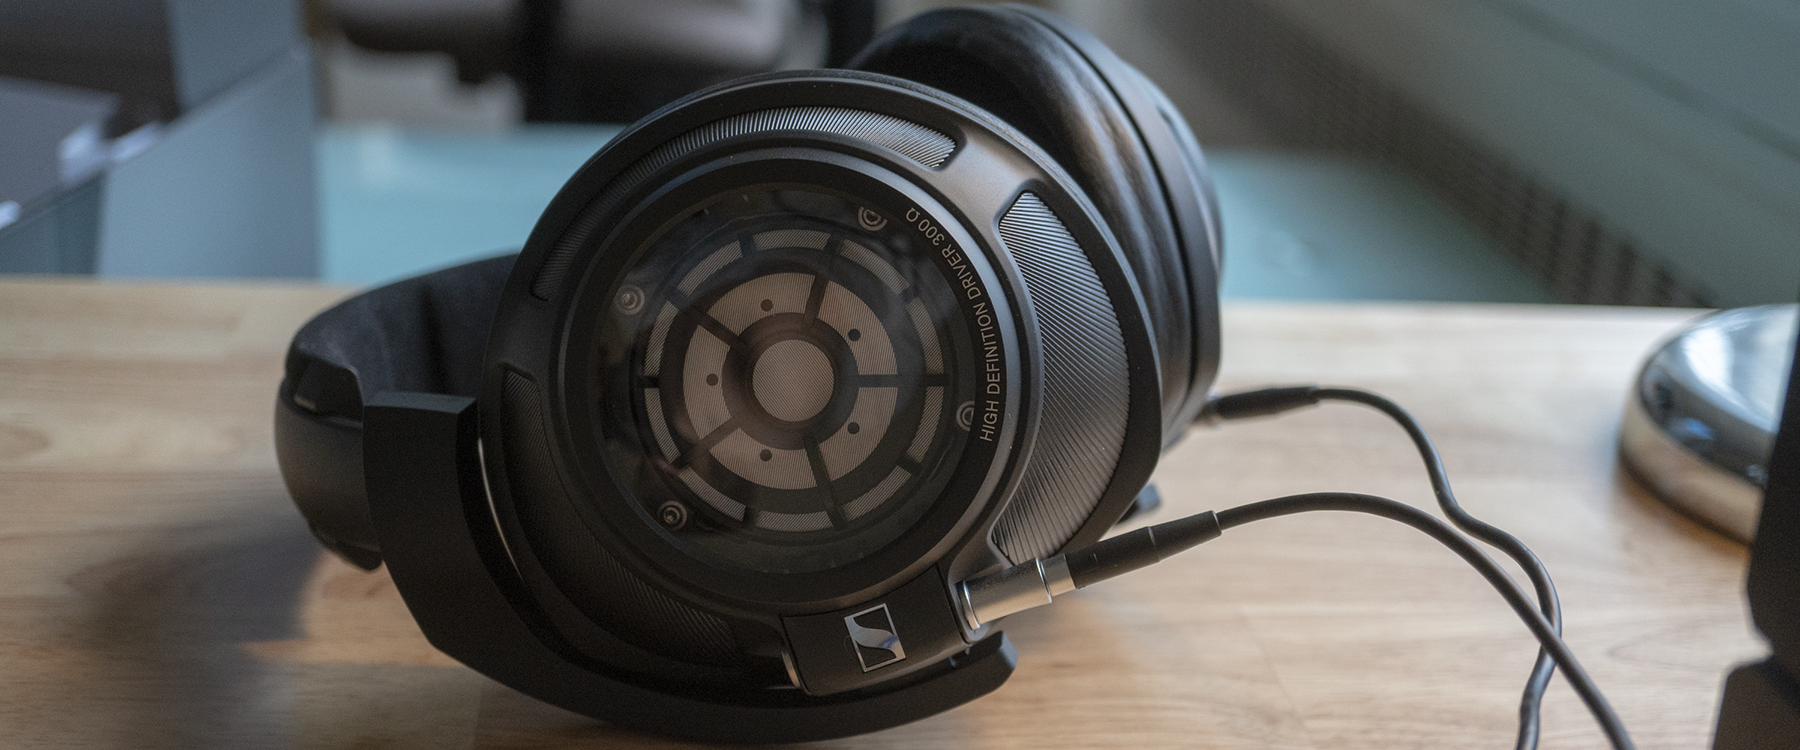 Sennheiser HD 820 Closed-Back Headphones on a work desk